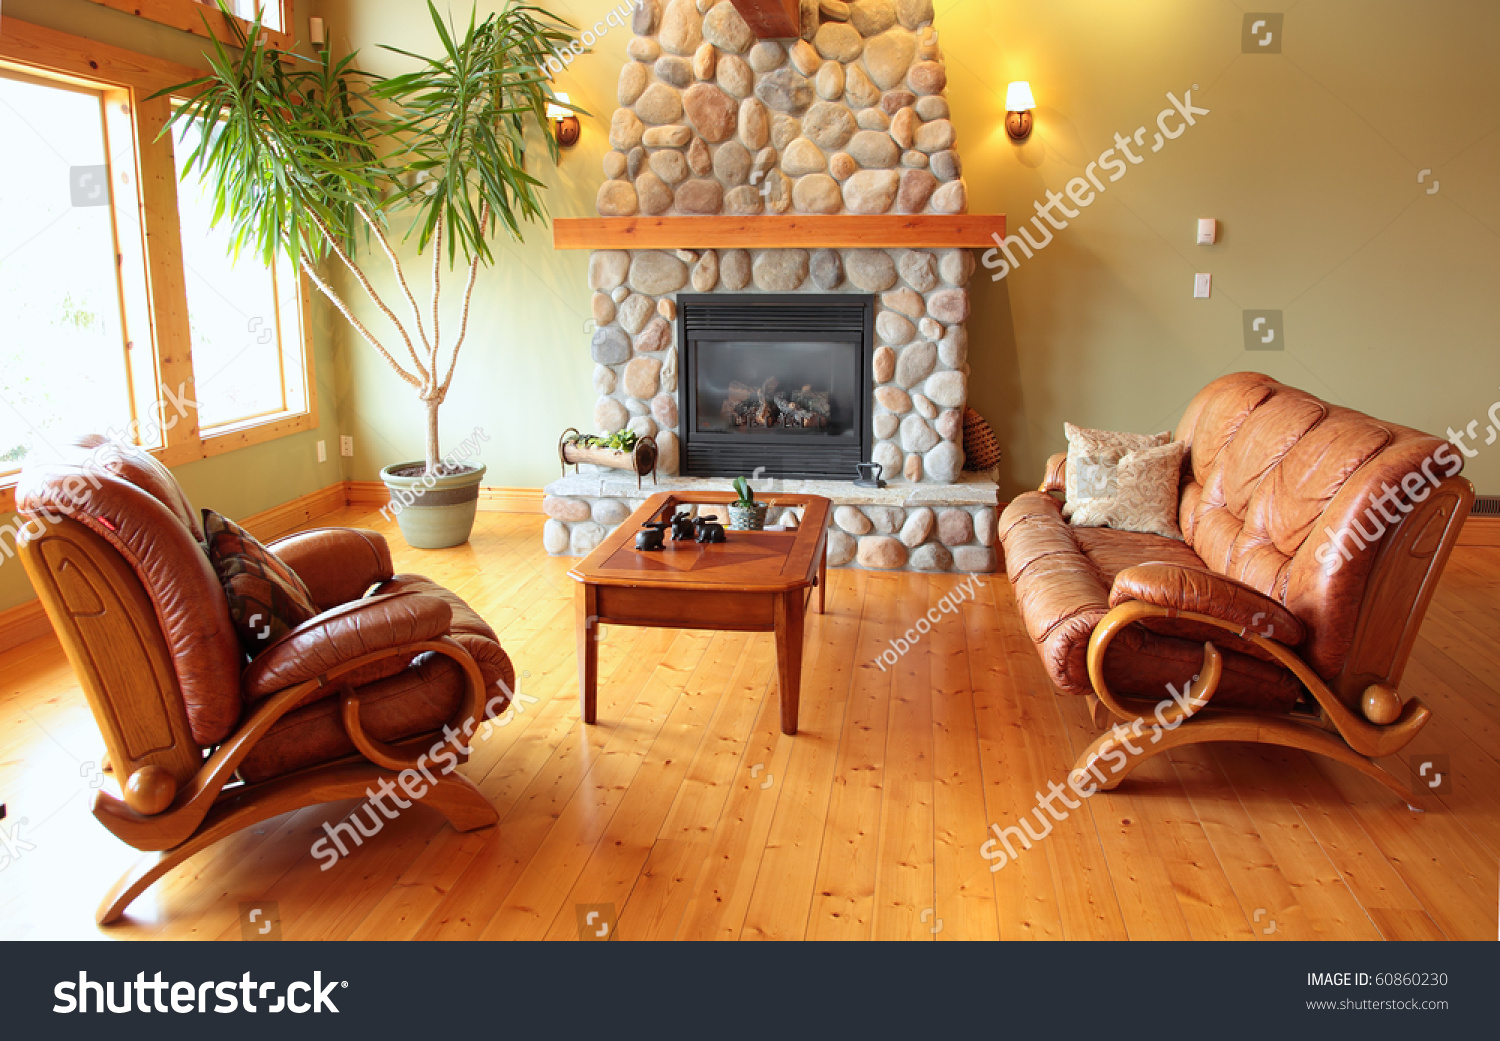 River rock fireplace pictures - A West Coast Living Room With A River Rock Fireplace